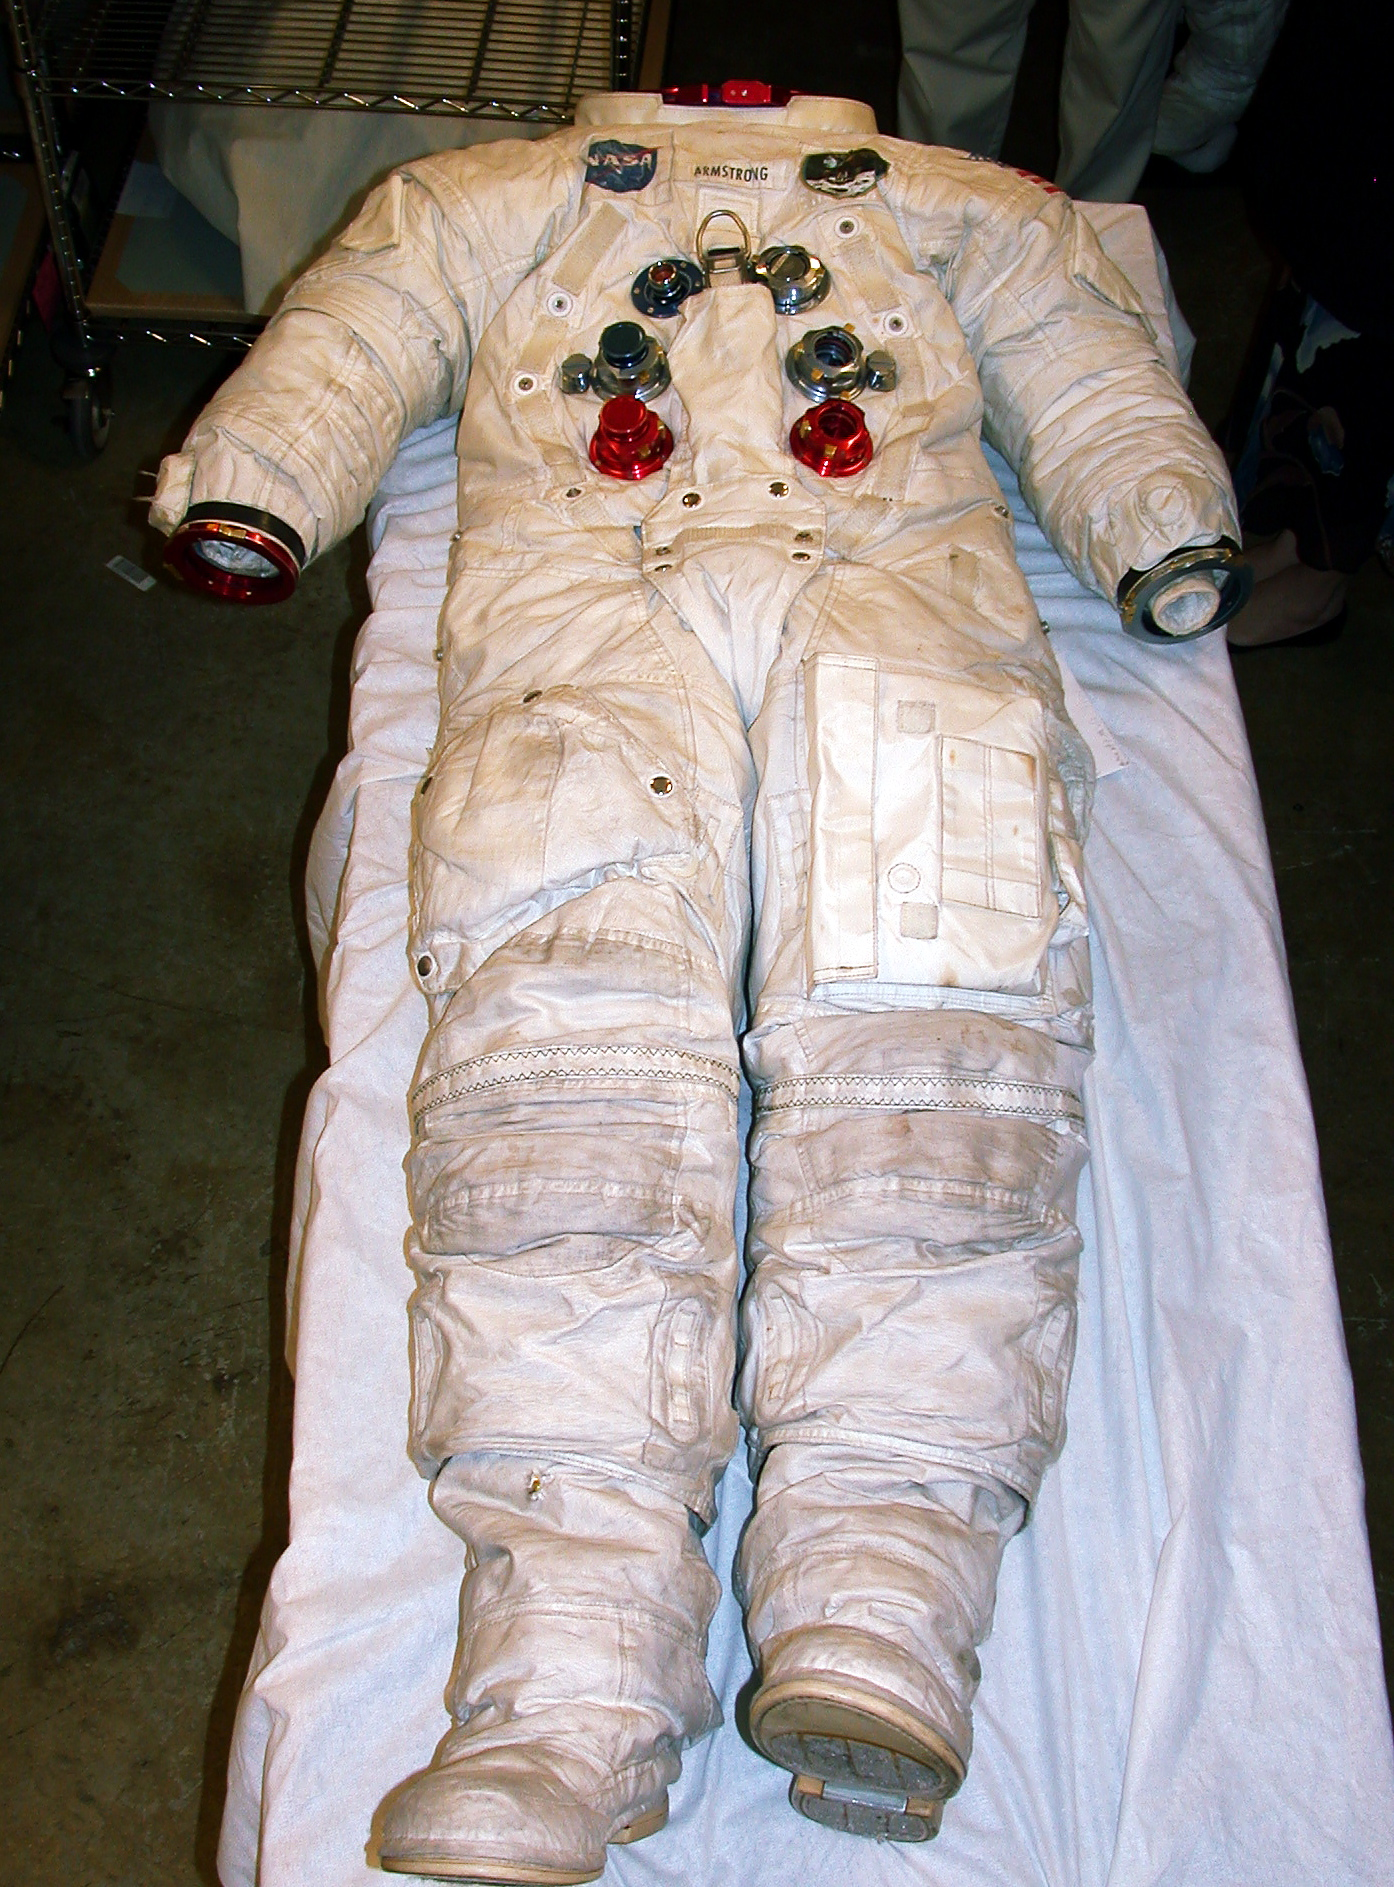 neil armstrong in astronaut uniform - photo #37